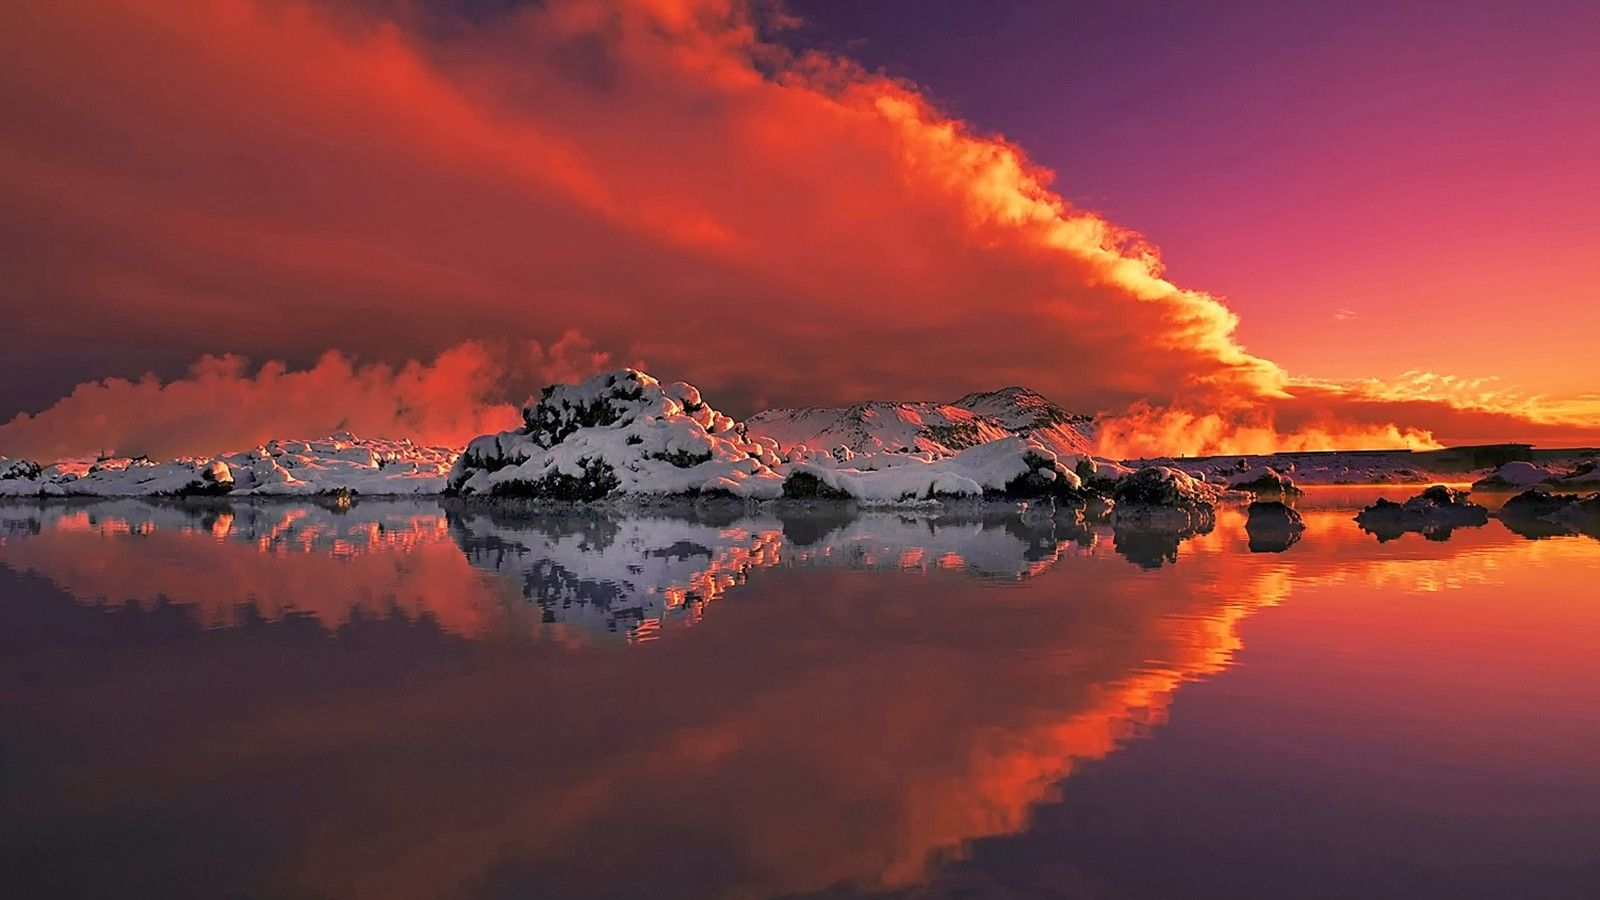 Natbg Com Ice Sunset Water Mountains Beautiful Reflection Snow Winter Clouds Red Sky Full Hd 1080p Background Nature Photos Nature Landscape Wallpaper sunset lake ice evening sky